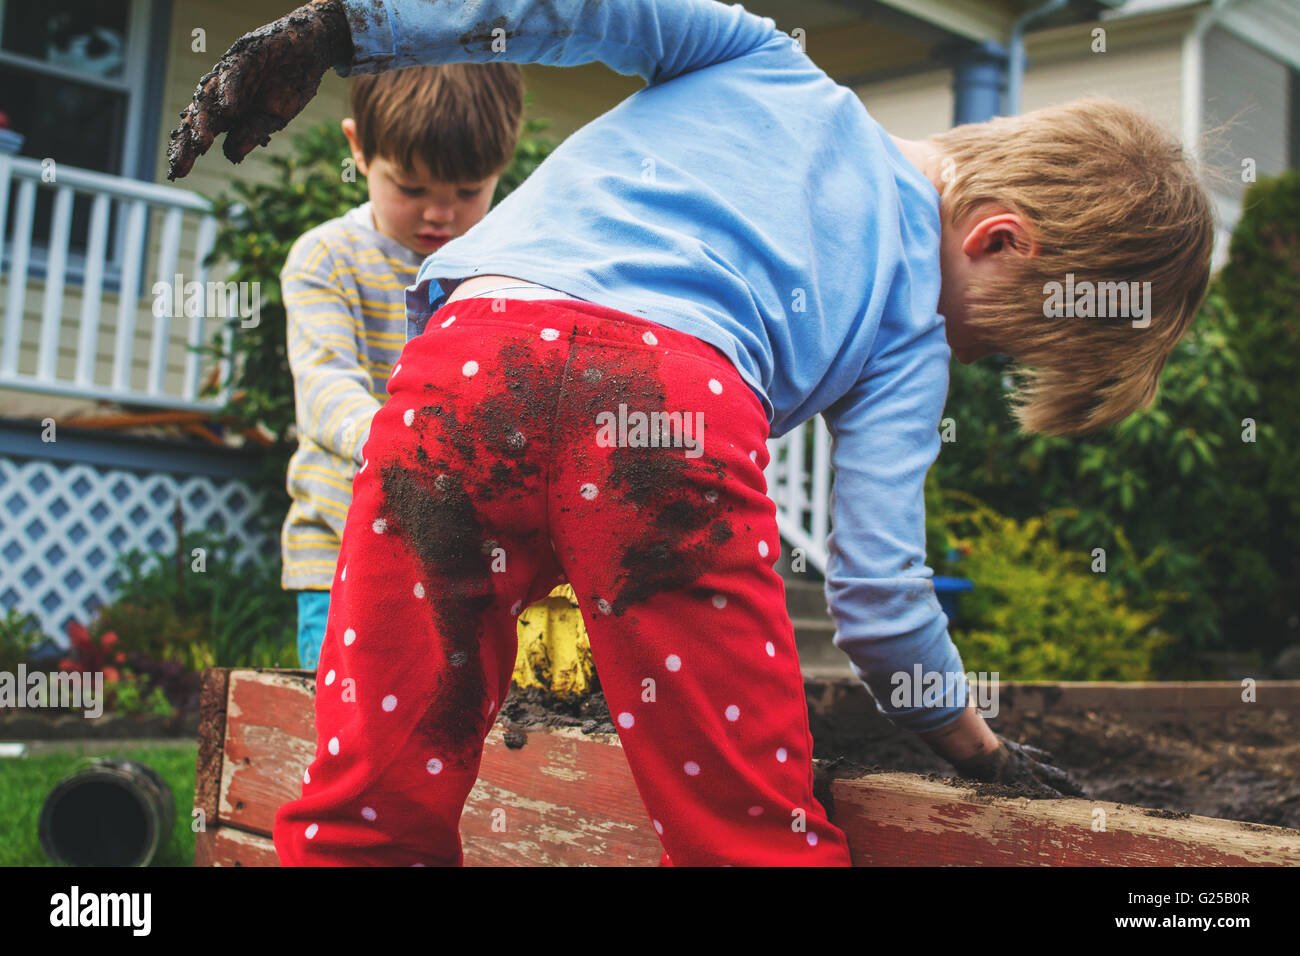 Two boys covered in mud gardening - Stock Image